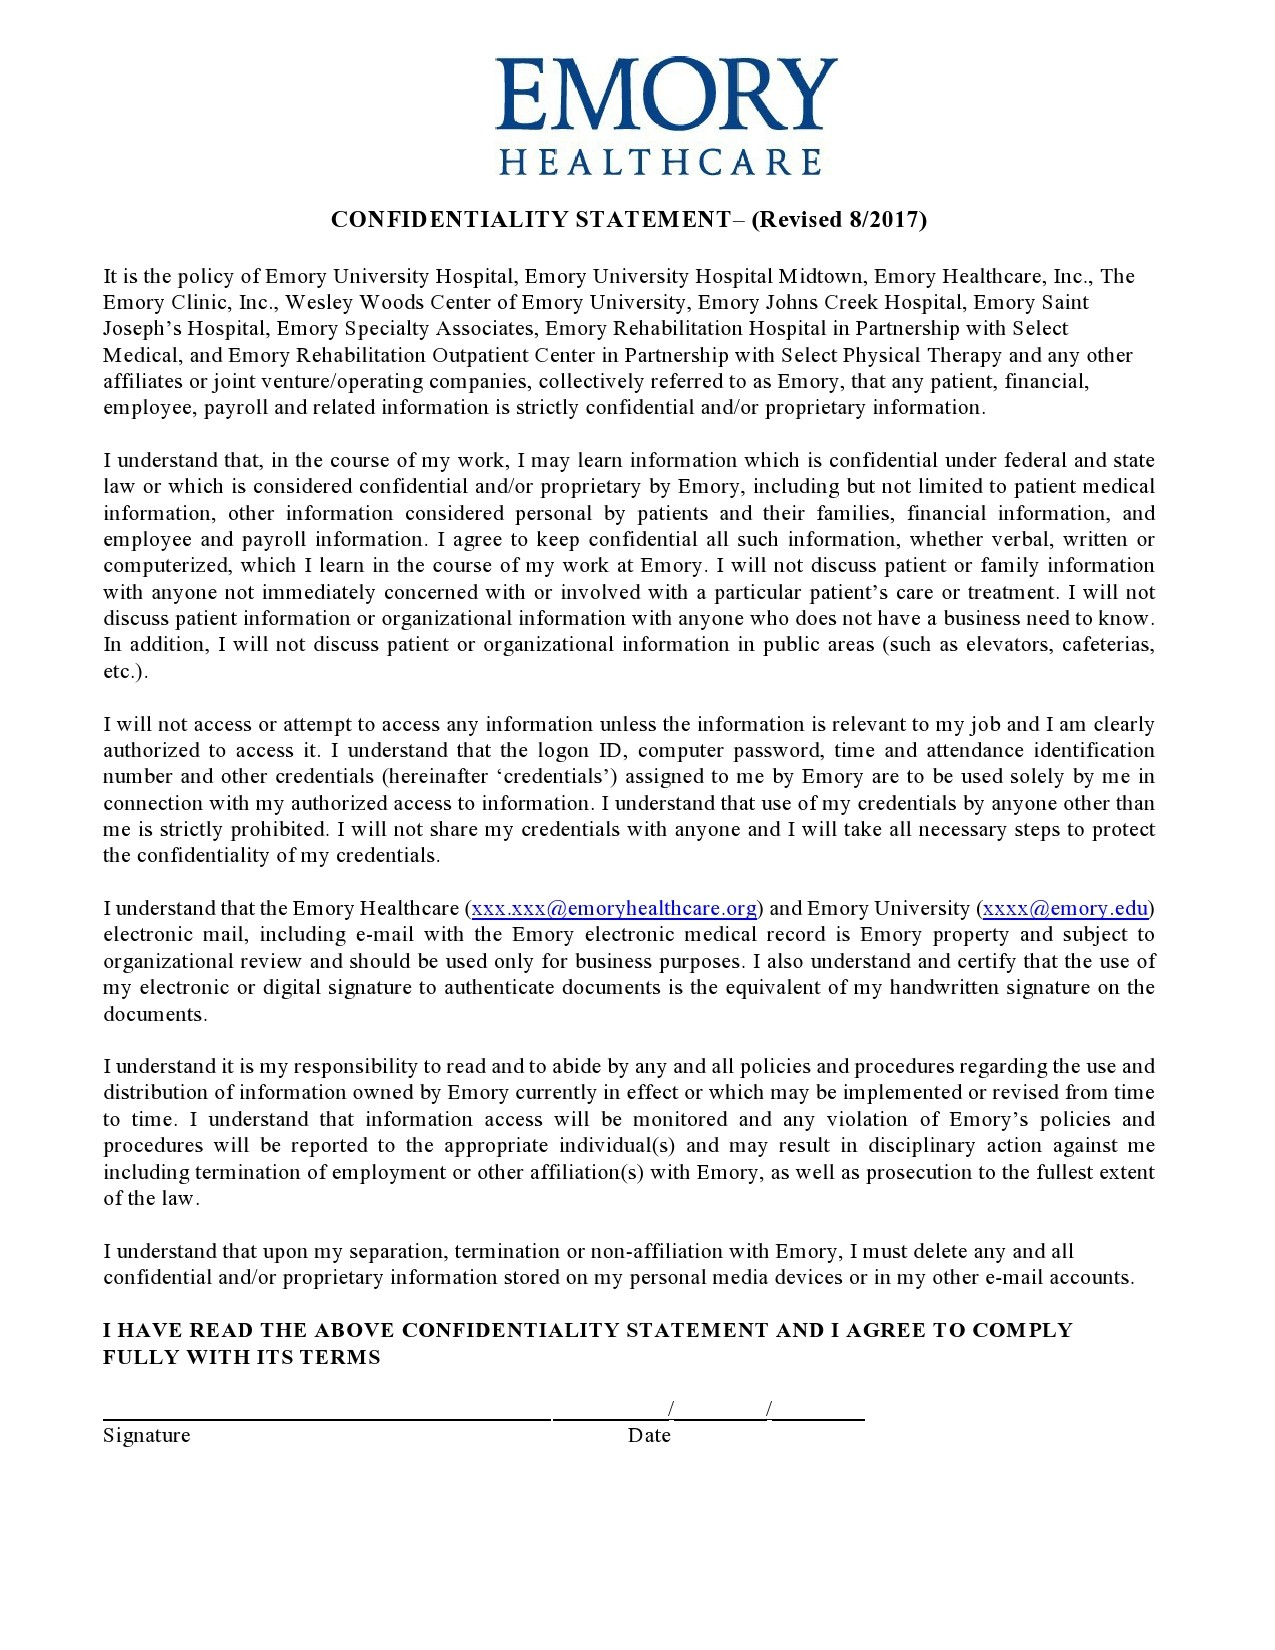 Free confidentiality statement 42